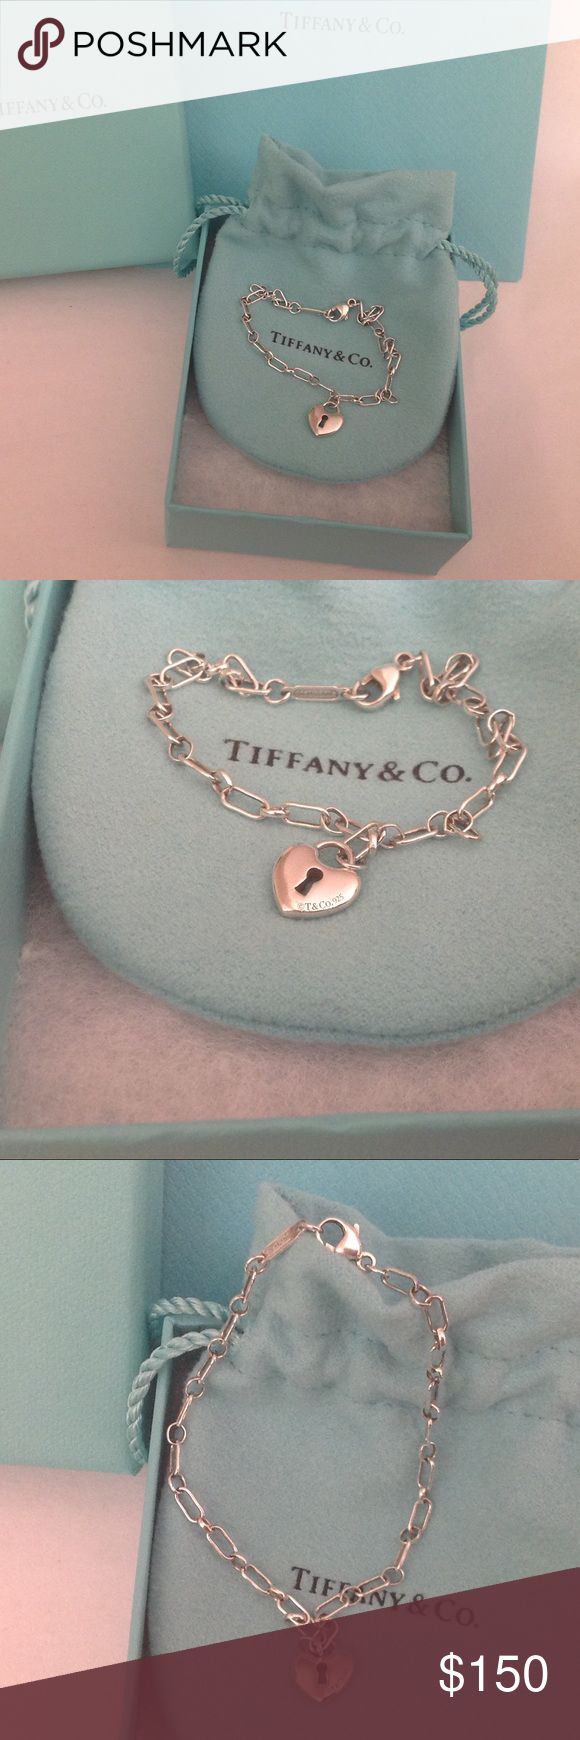 """SALE☃️Tiffany & Co Mini Heart Lock Bracelet Authentic sterling silver Tiffany mini heart lock bracelet. Measures 7"""" so it is a better fit for small wrists.  Very cute and dainty and in excellent used condition, with minor signs of wear, ( if any ).  Includes the Tiffany box and pouch. 🚫NO TRADES🚫 SALE PRICE IS FIRM, NOT ACCEPTING OFFERS. Tiffany & Co. Jewelry Bracelets #SterlingSilverTiffanyJewelry"""